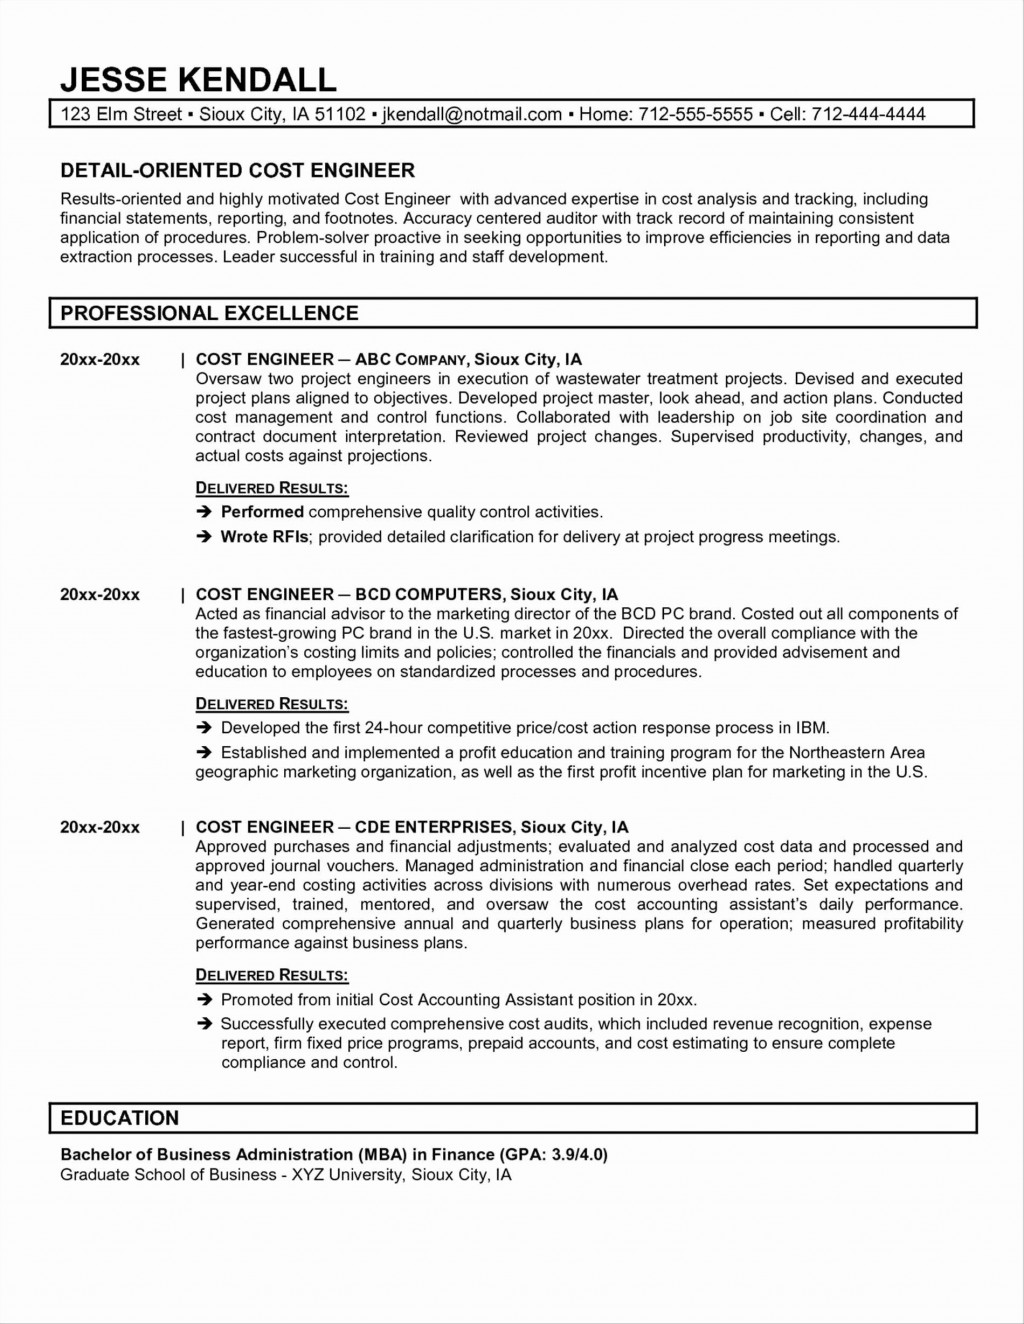 001 Fearsome Professional Development Plan Template For Engineer High Def  Engineers Goal ExampleLarge